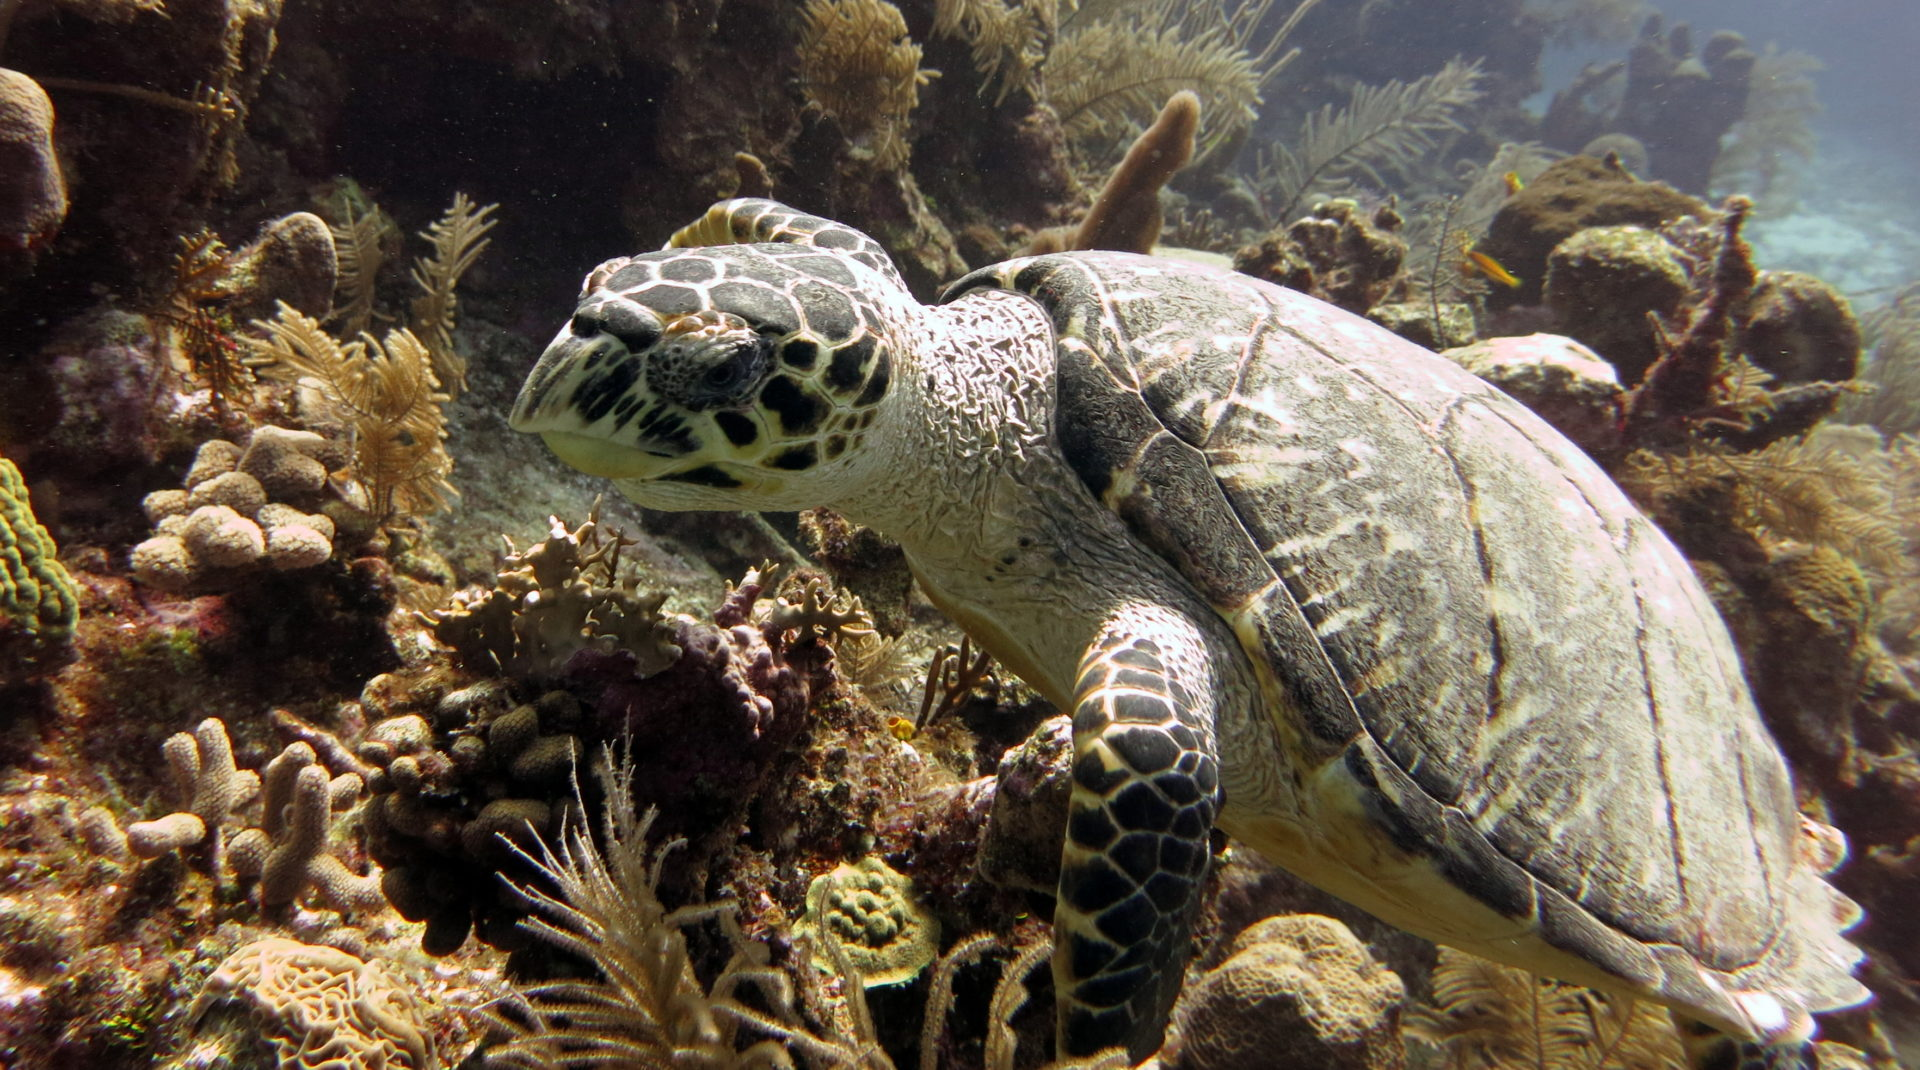 Coral reef Cozumel: Fascinating for divers and snorkelers